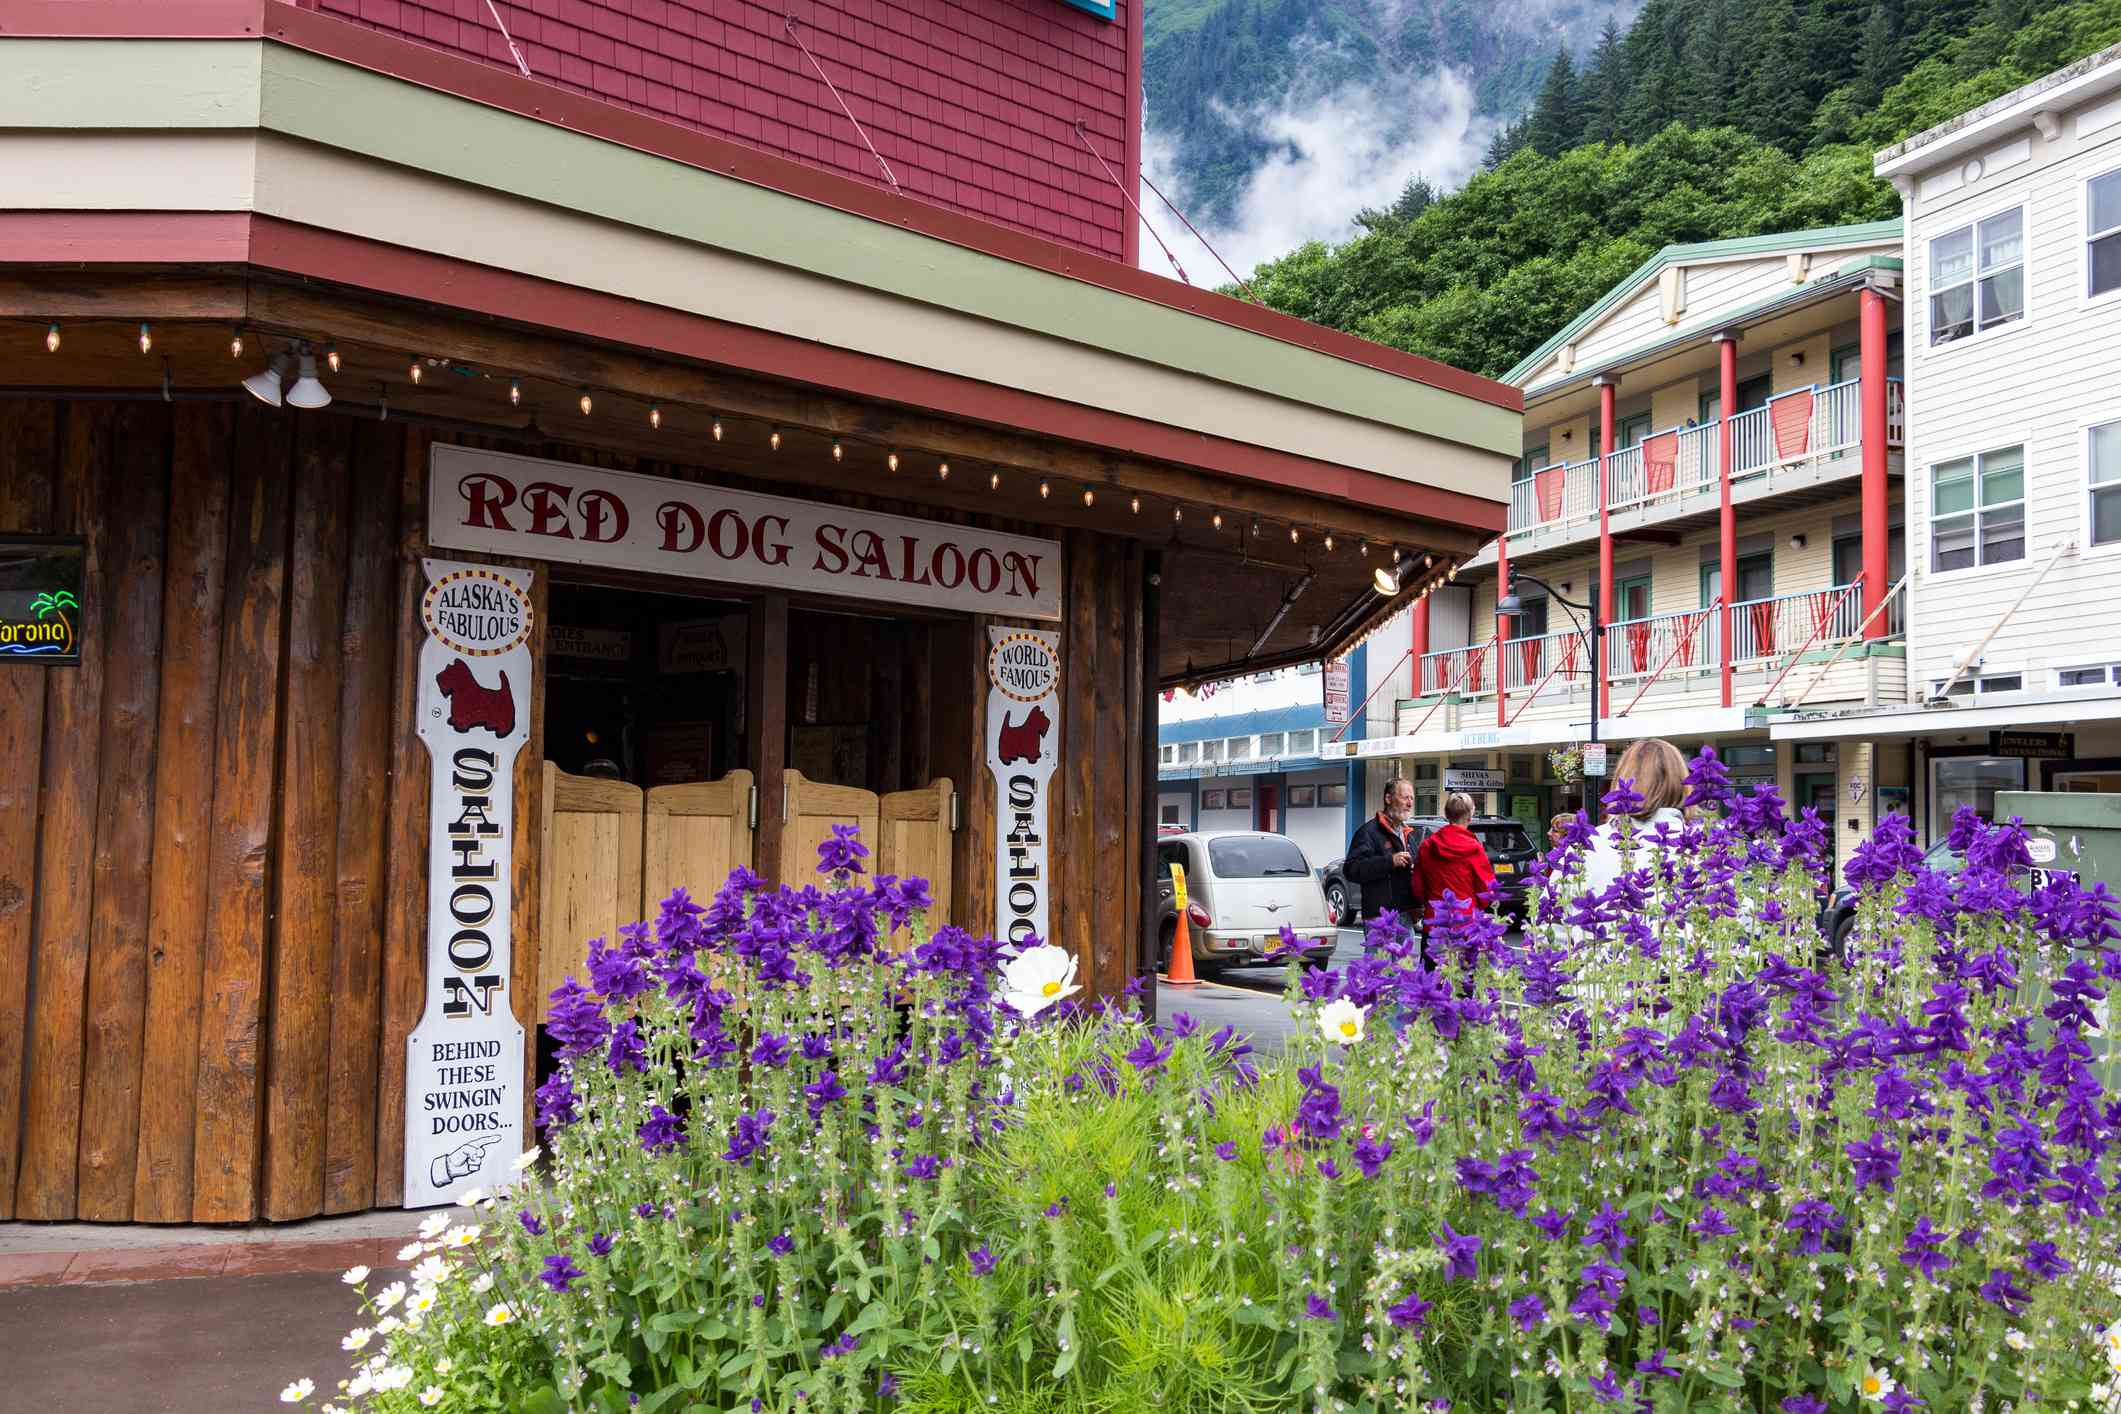 The Red Dog Saloon, placed at Franklin St, Juneau.